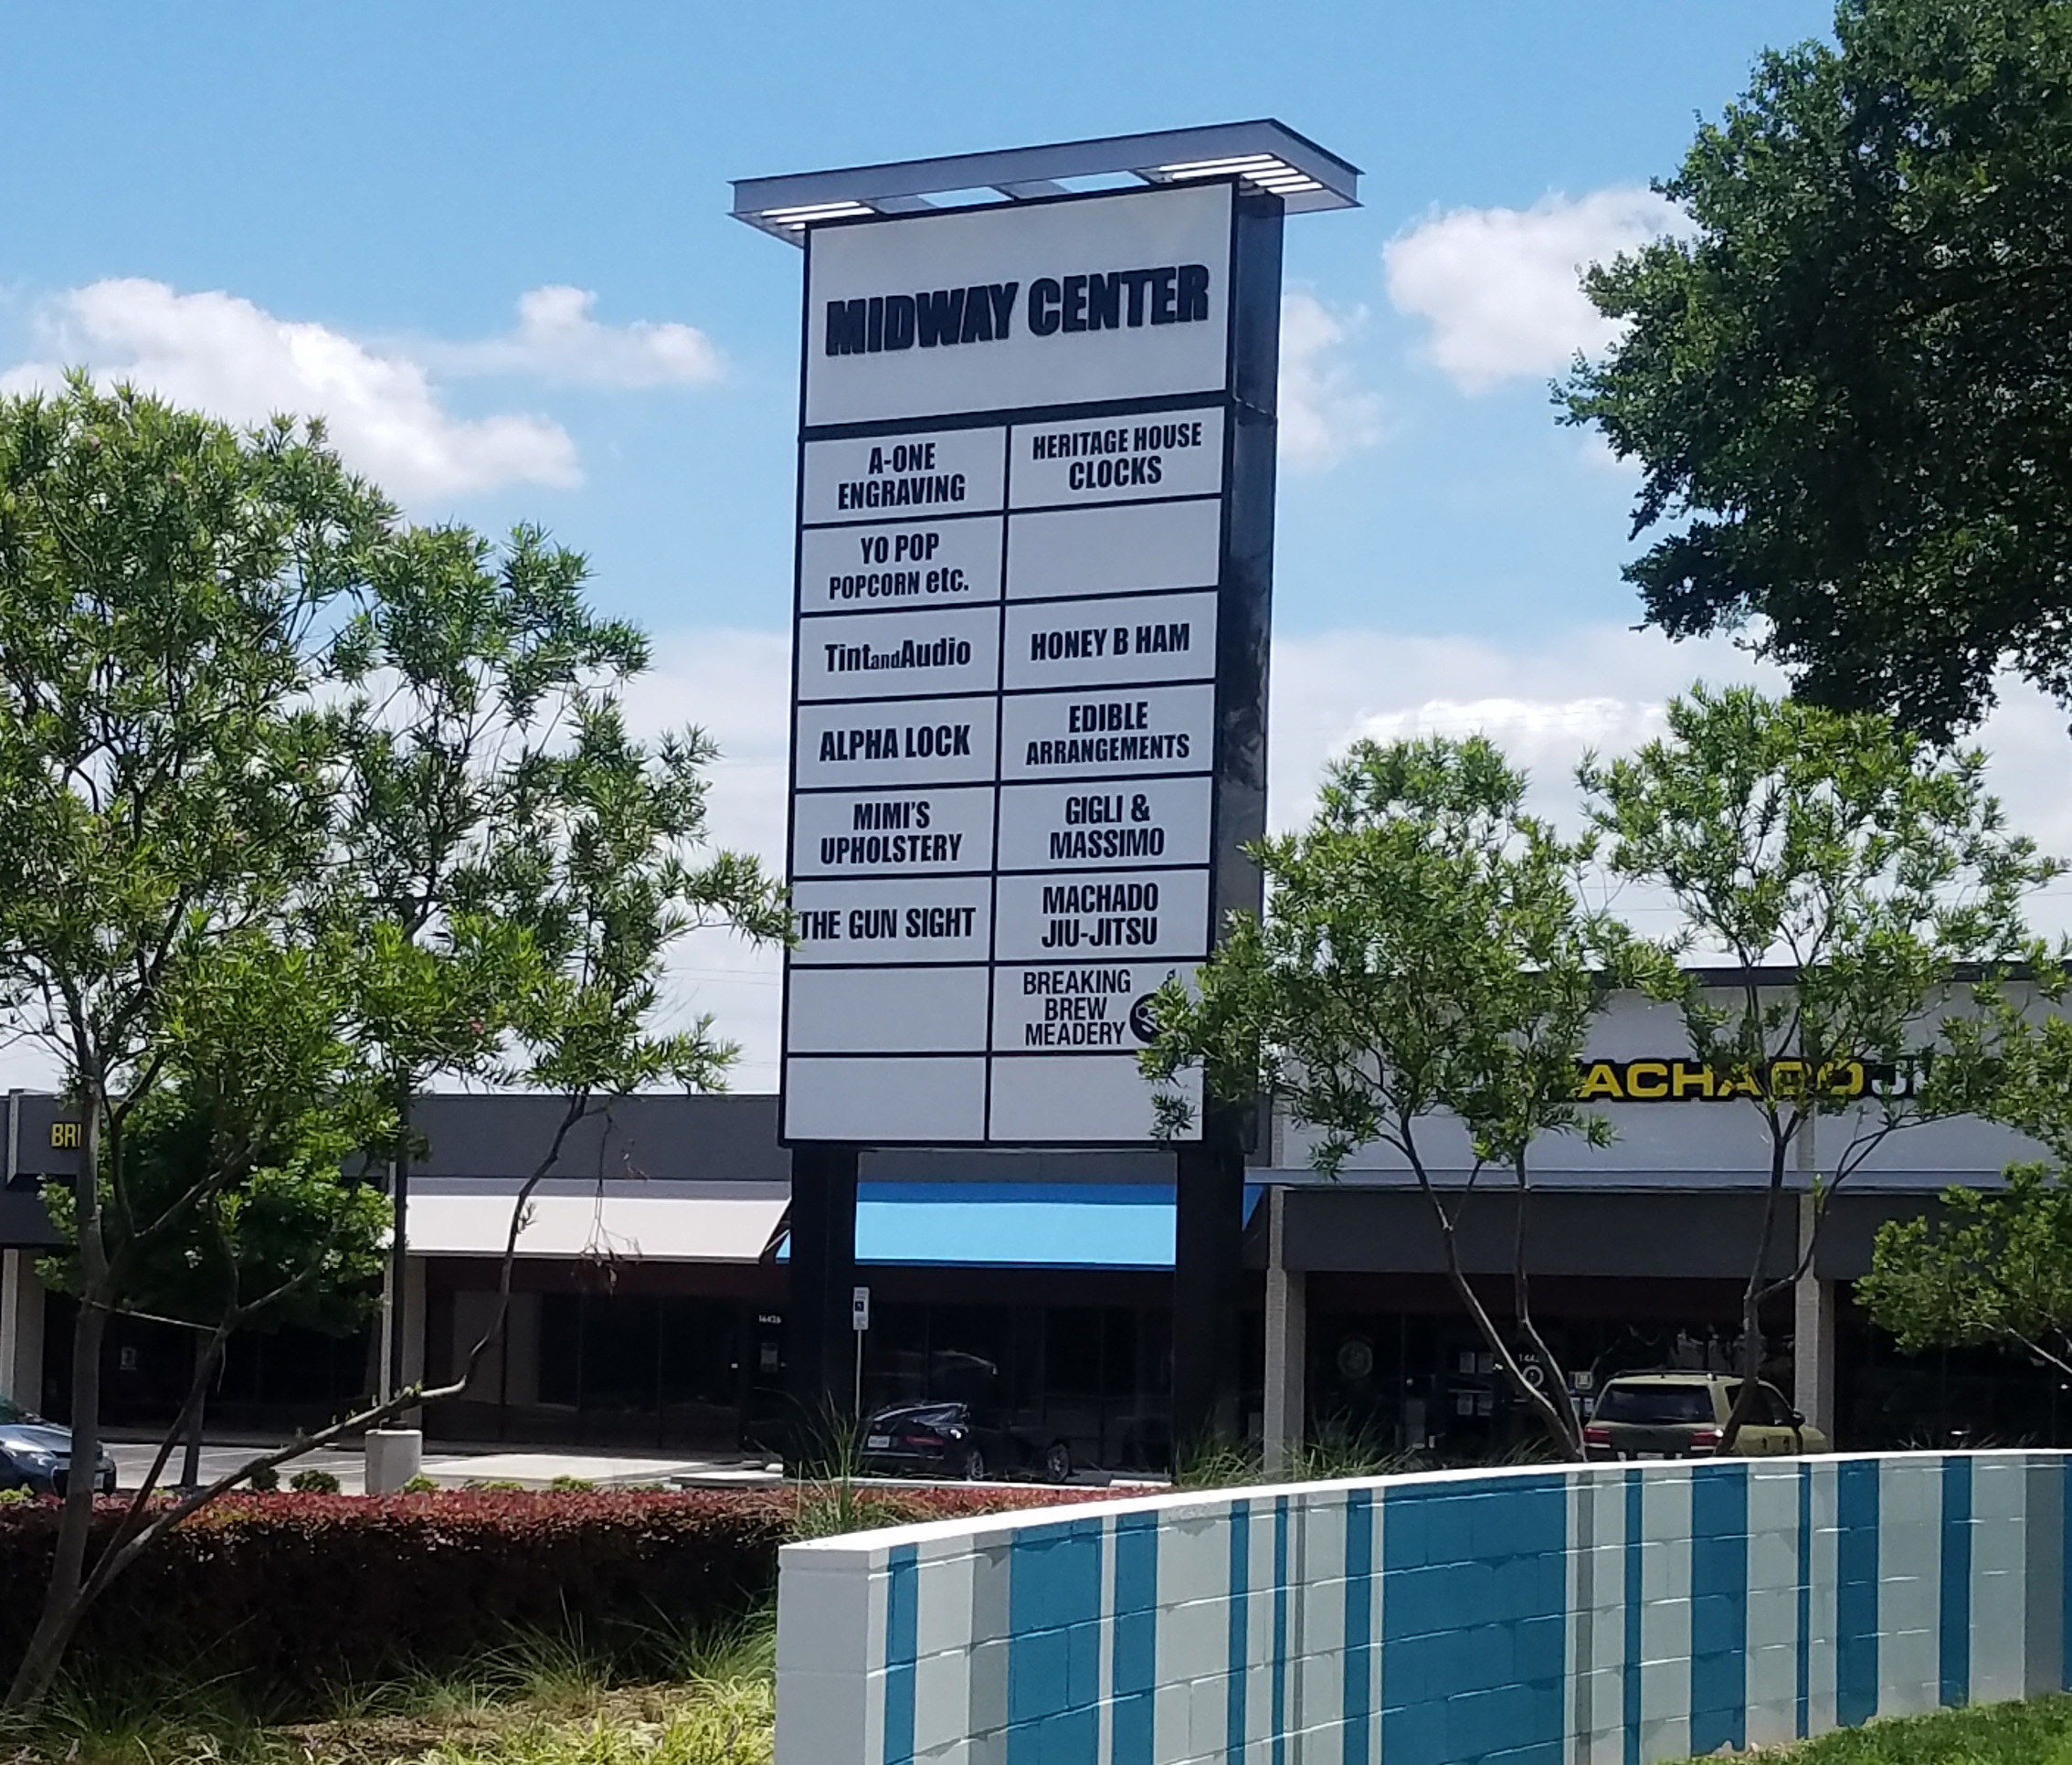 Property: Midway Center